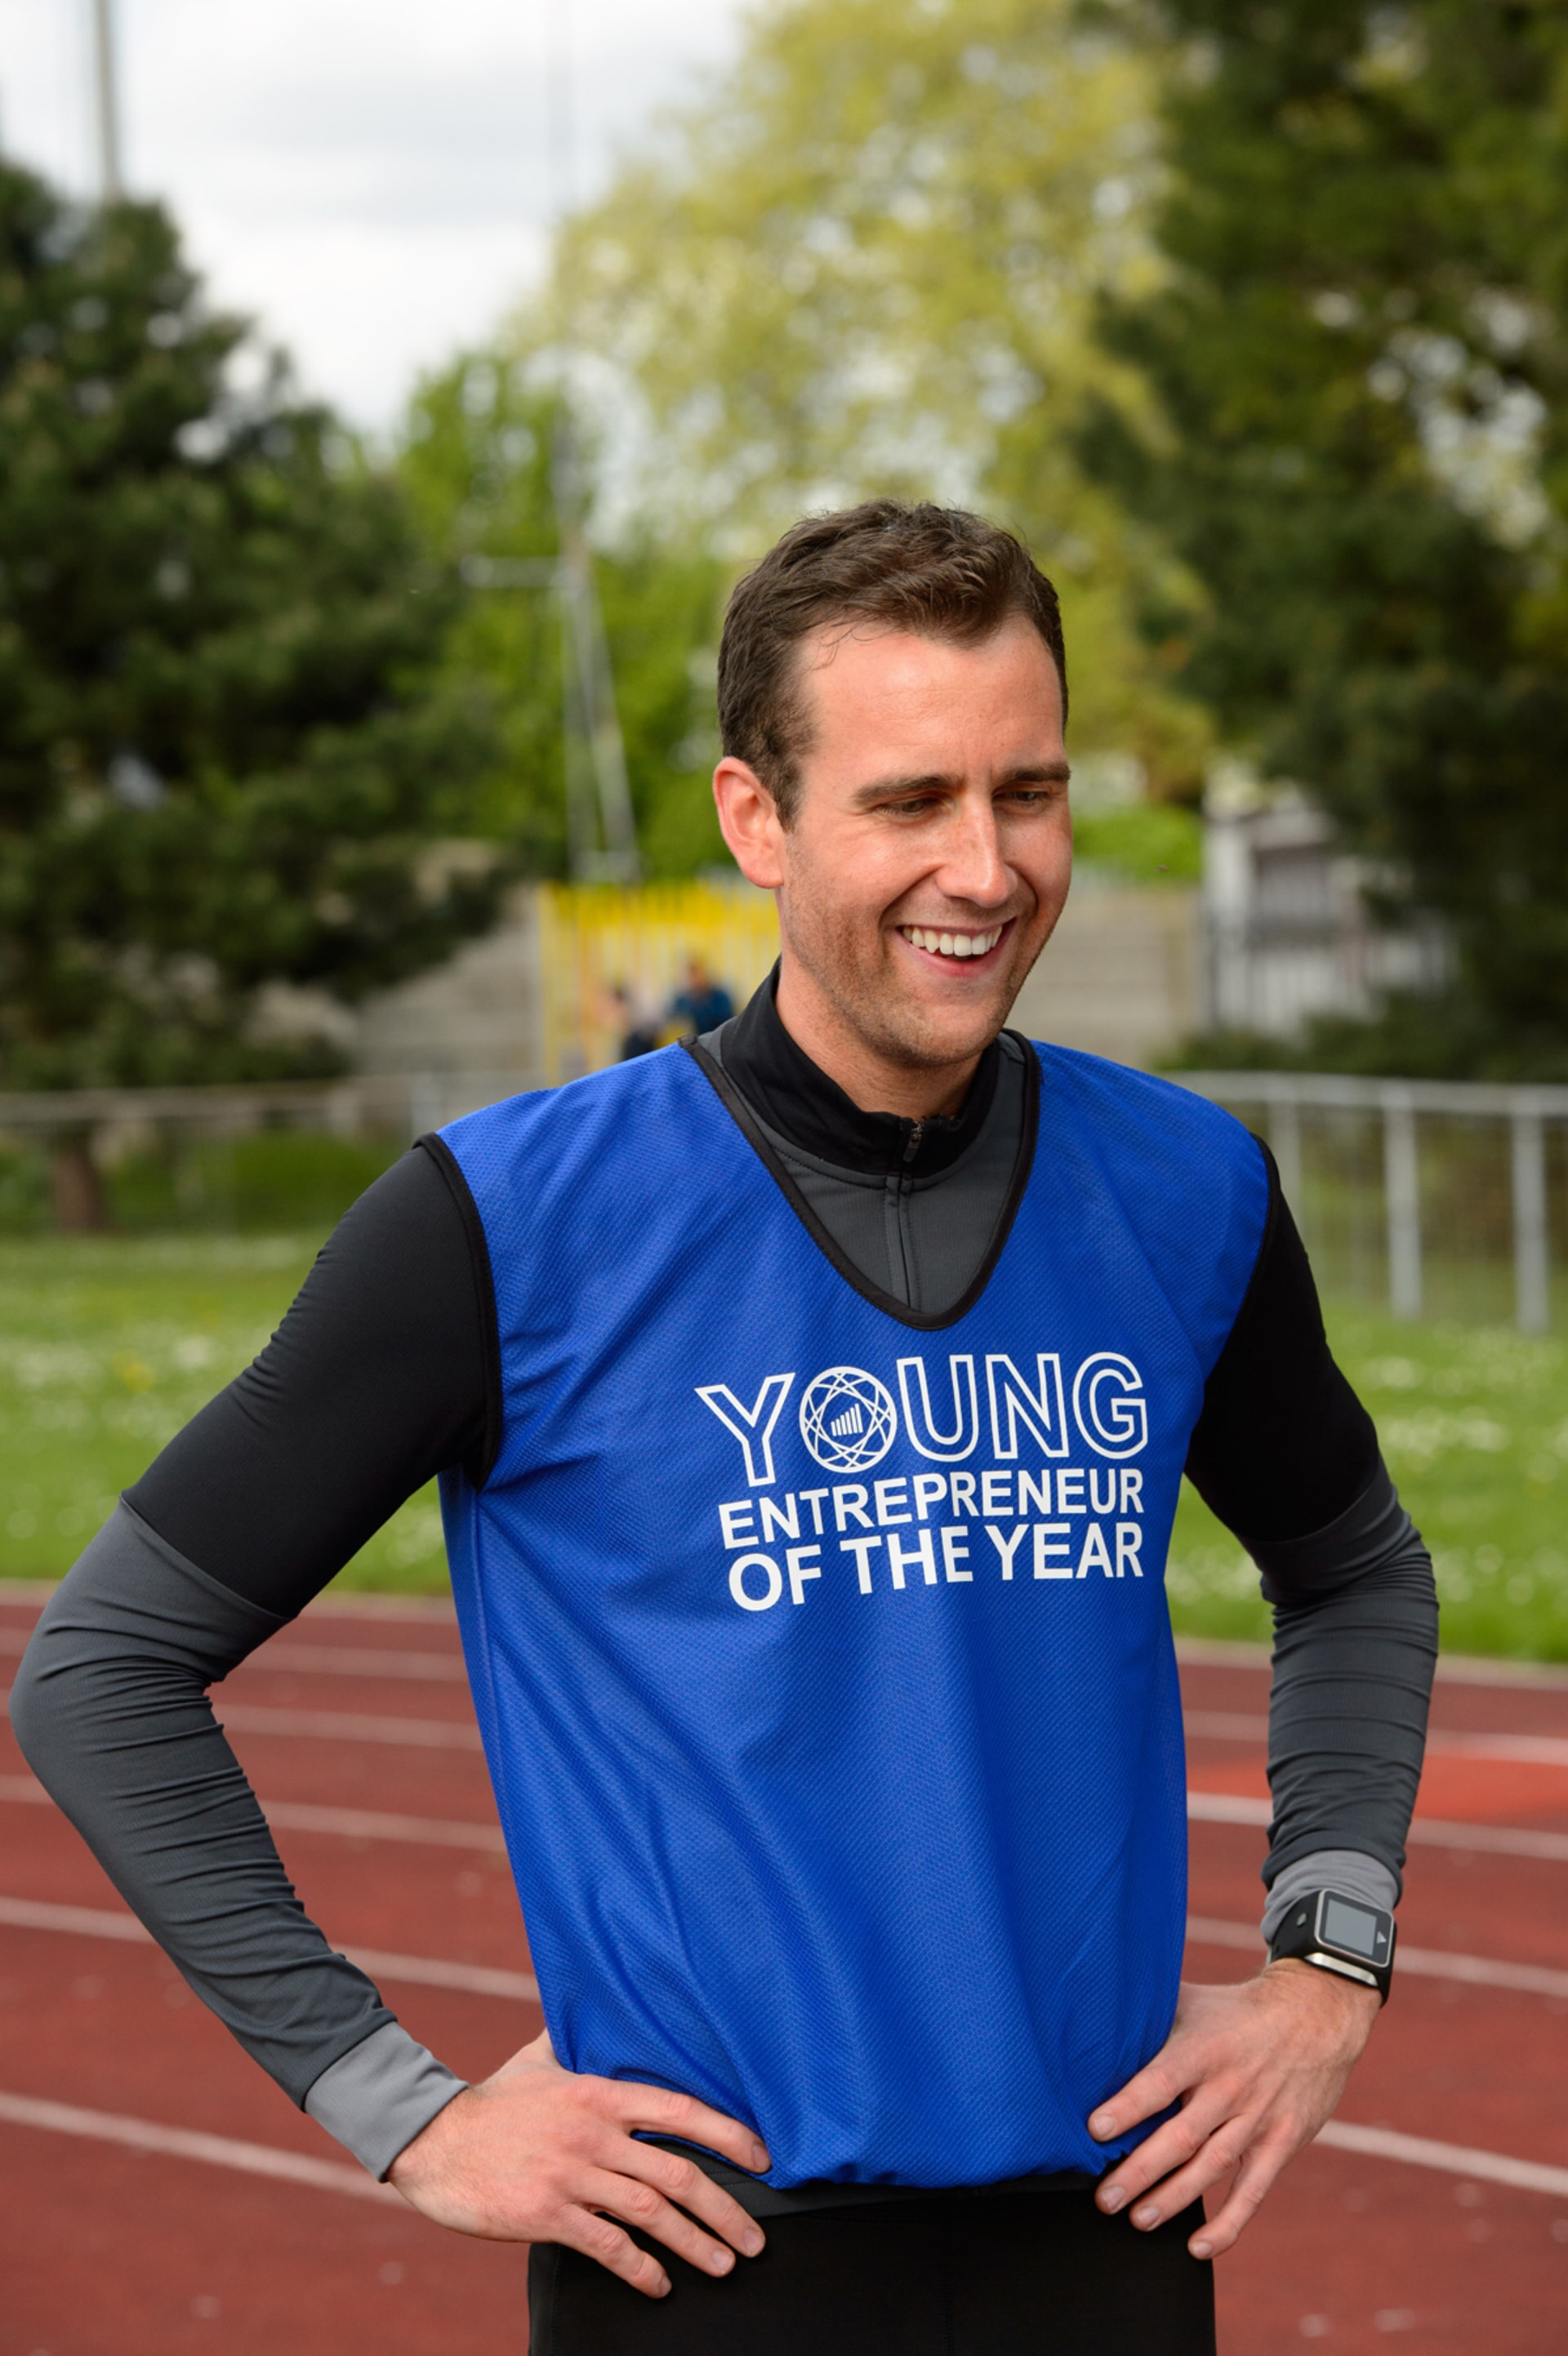 MATTHEW LEWIS as Patrick on a race track wearing a running shirt that says Young Entrepreneur of The Year.